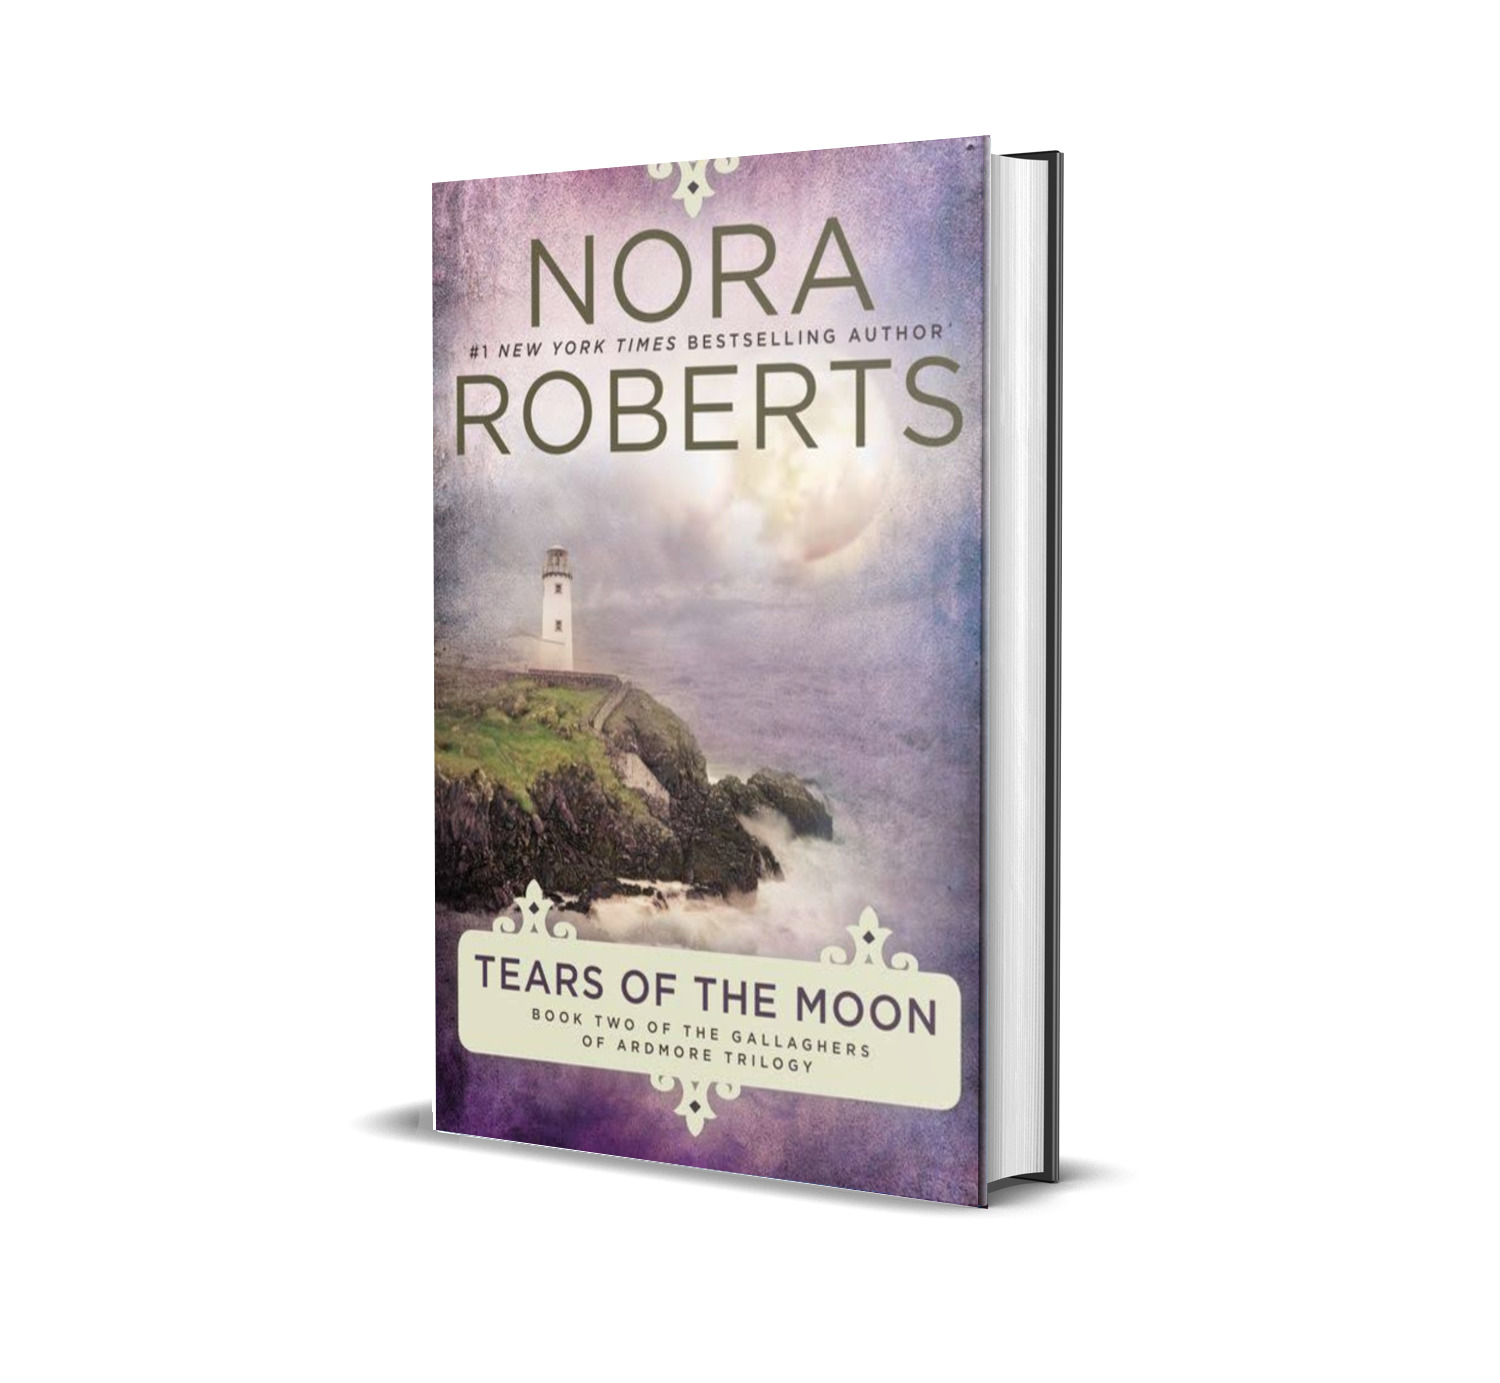 TEARS OF THE MOON NORA ROBERTS